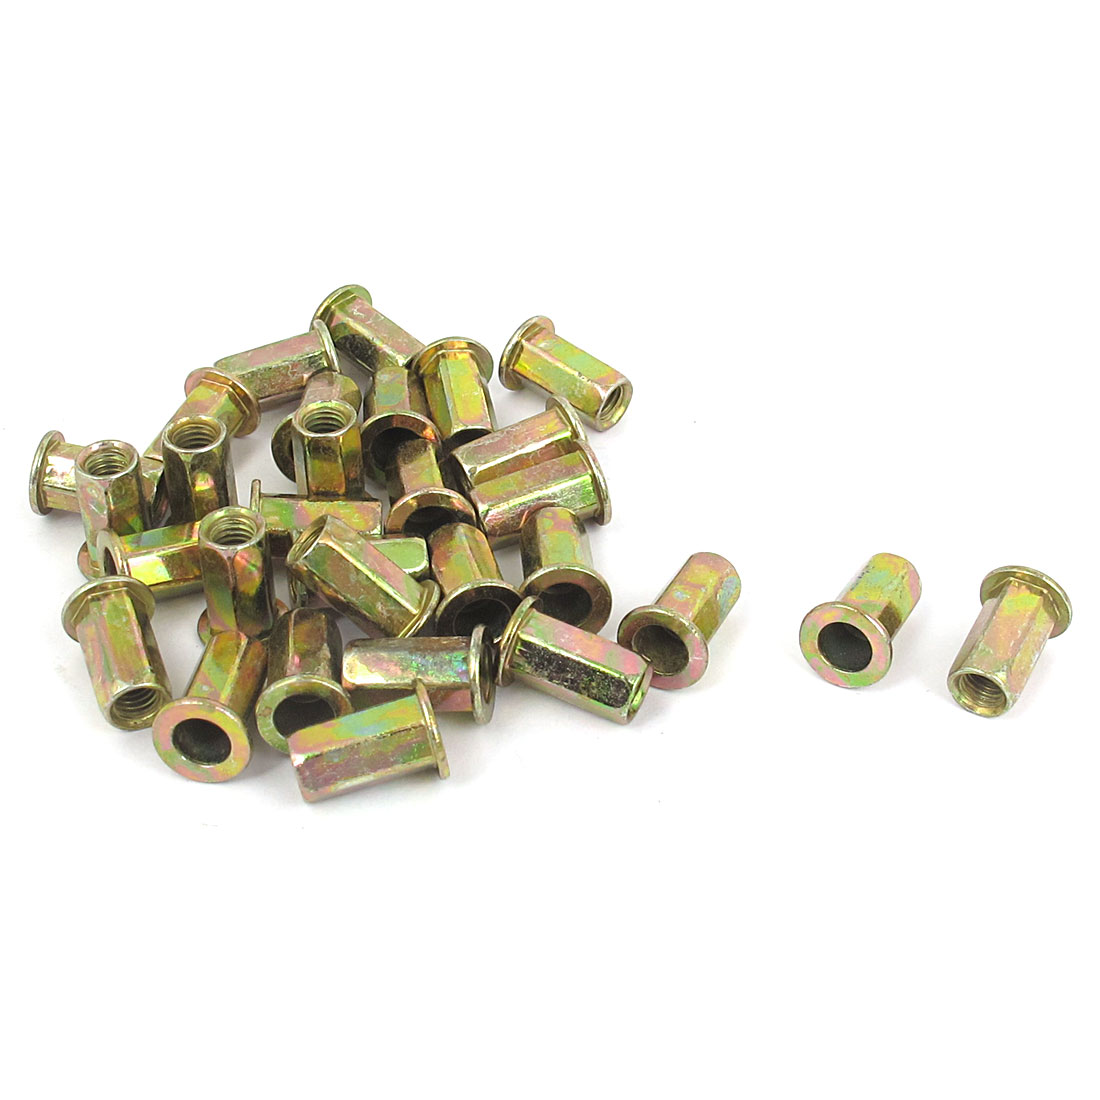 30 Pcs M5x13mm Flat Head Hex Body Open End Blind Rivet Nuts Nutserts Fasteners